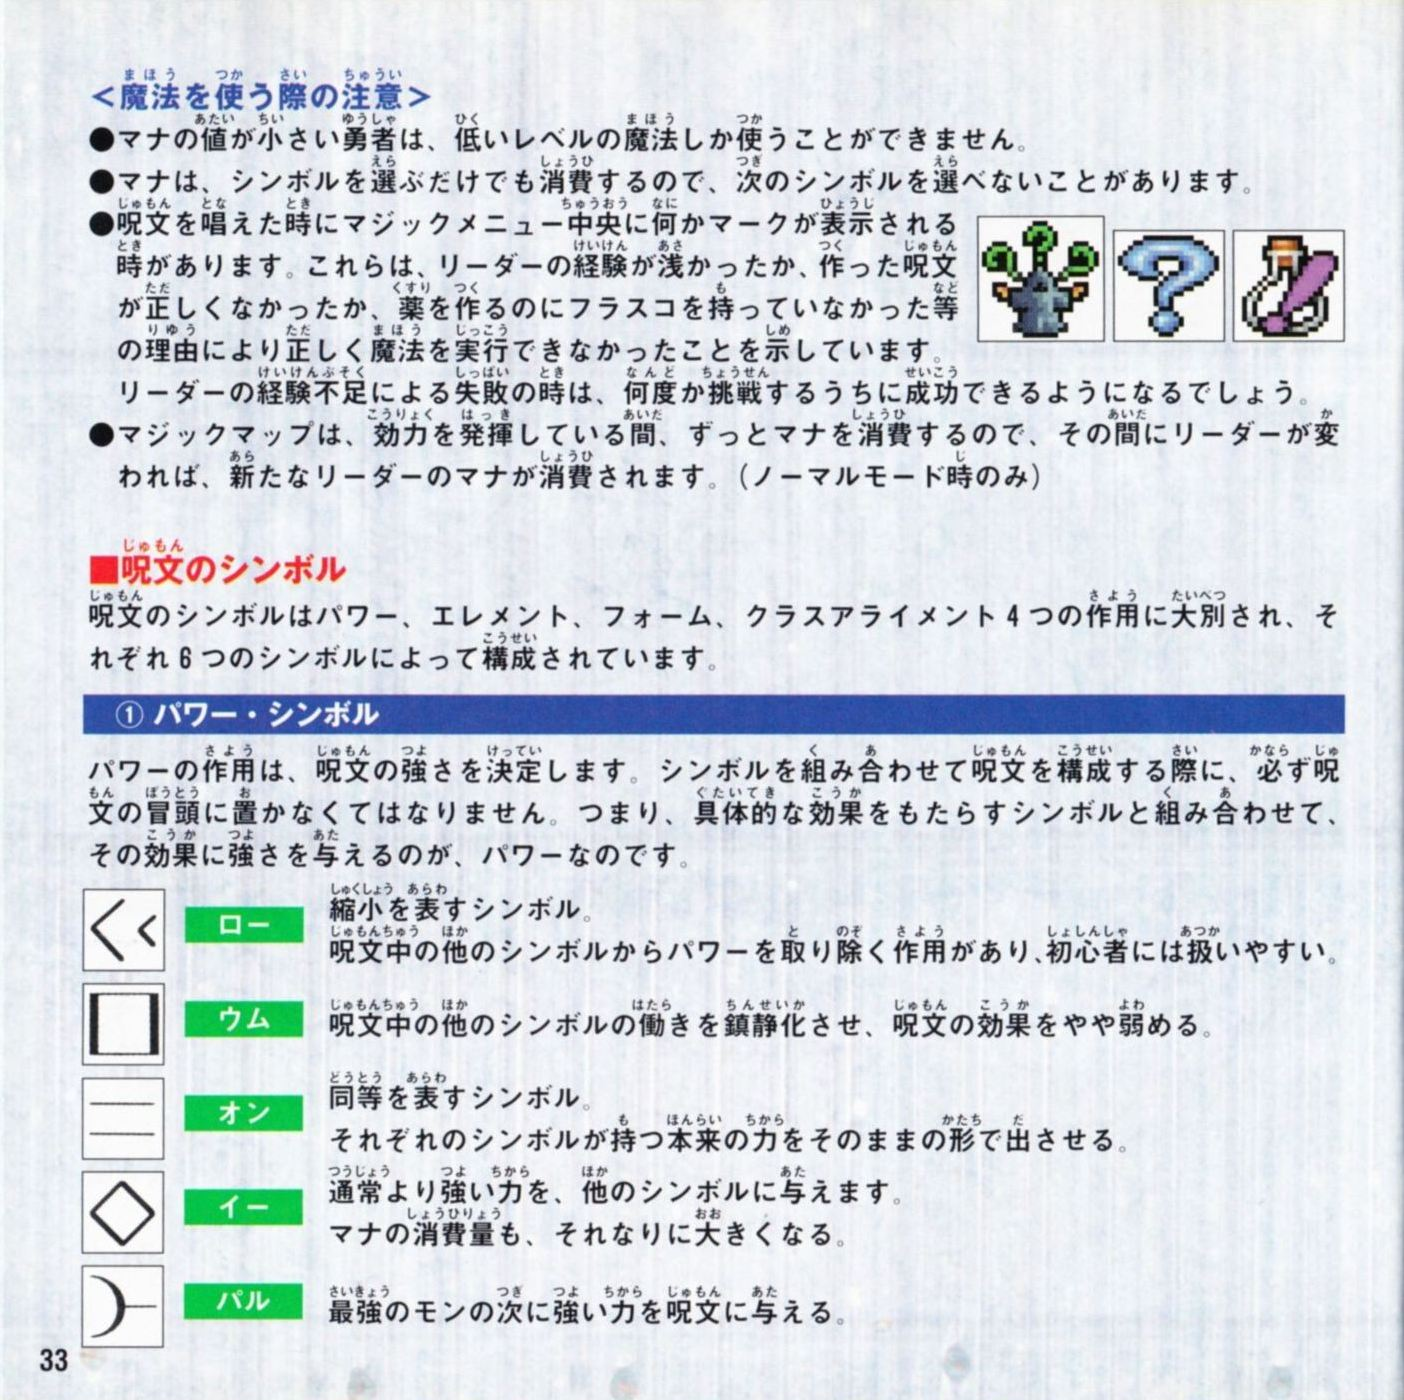 Game - Dungeon Master Nexus - JP - Sega Saturn - Booklet - Page 034 - Scan